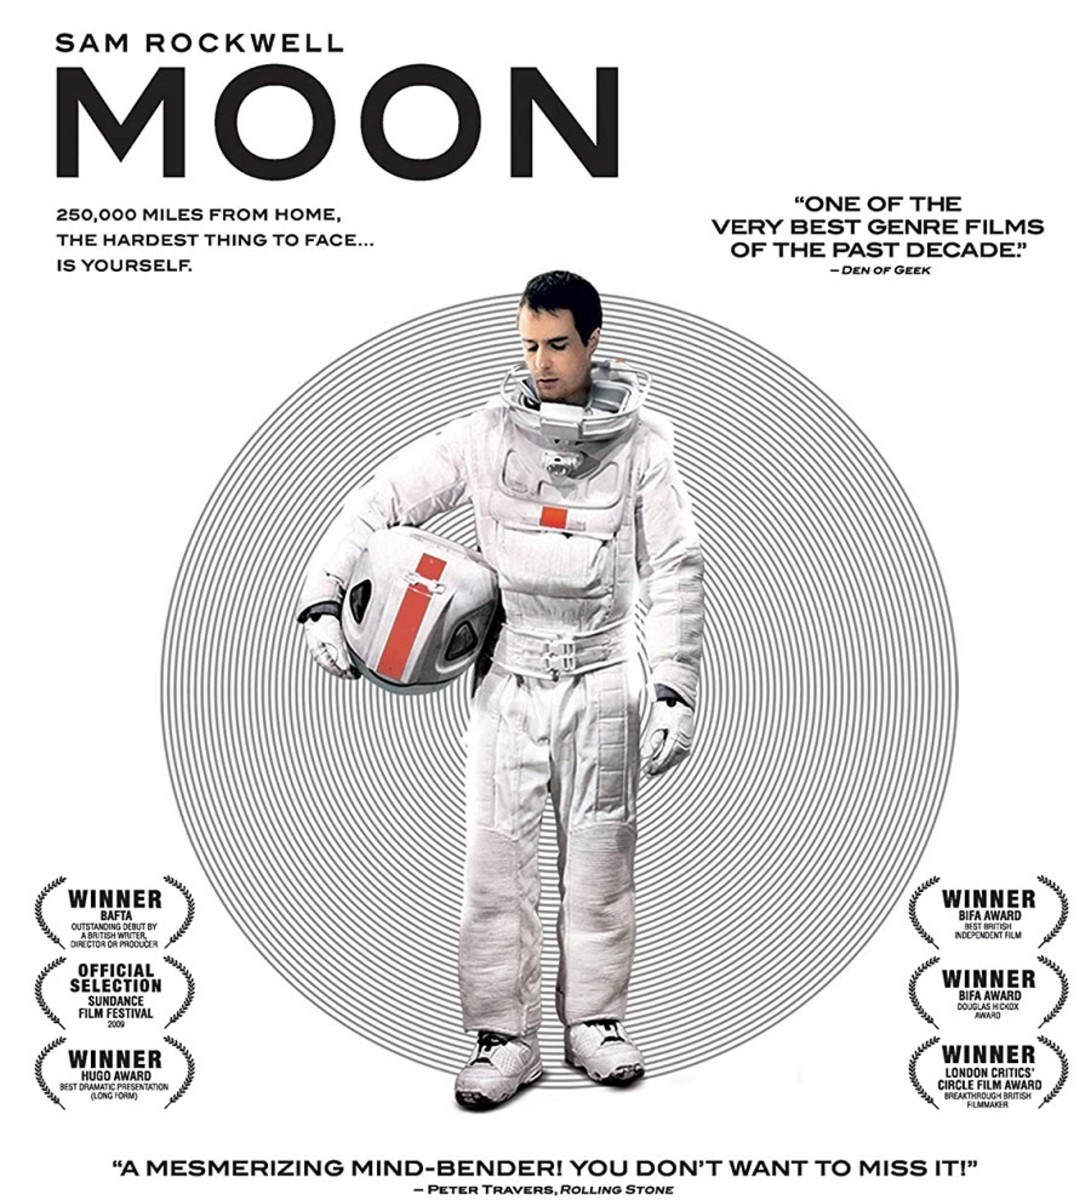 Moon - The Space Isolation Film Genre?